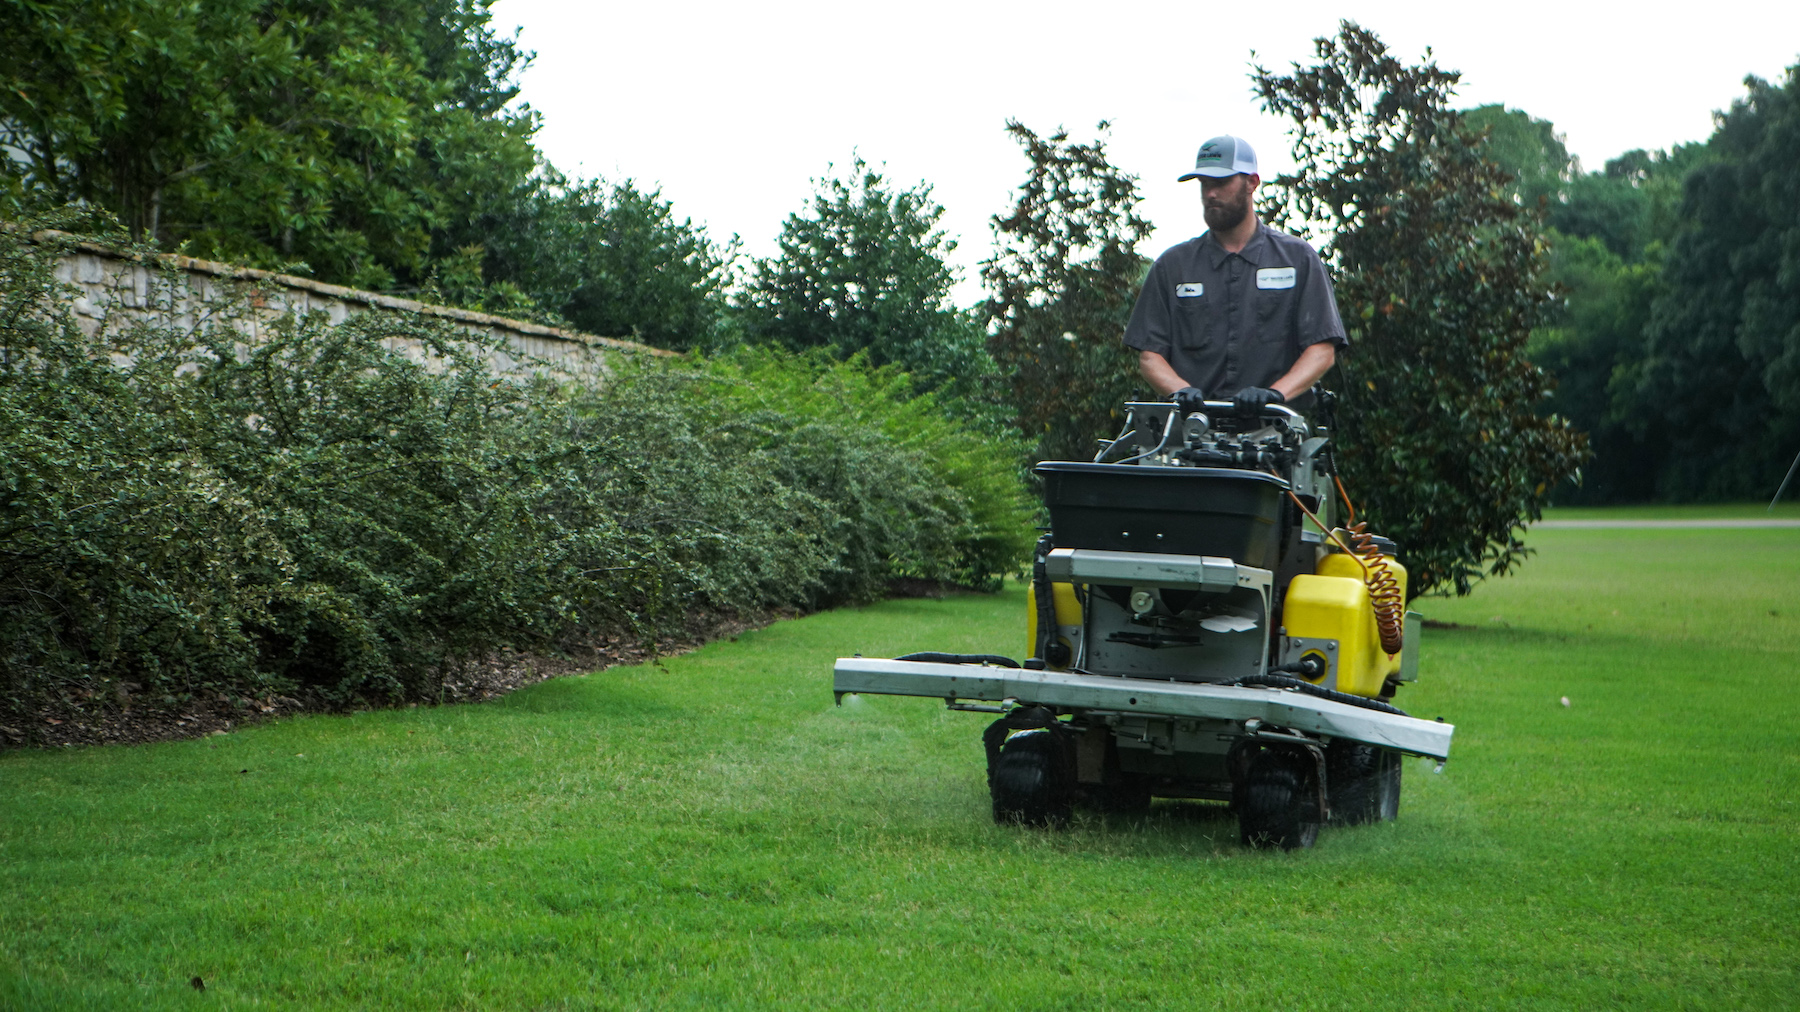 lawn care technician spraying with ride on sprayer